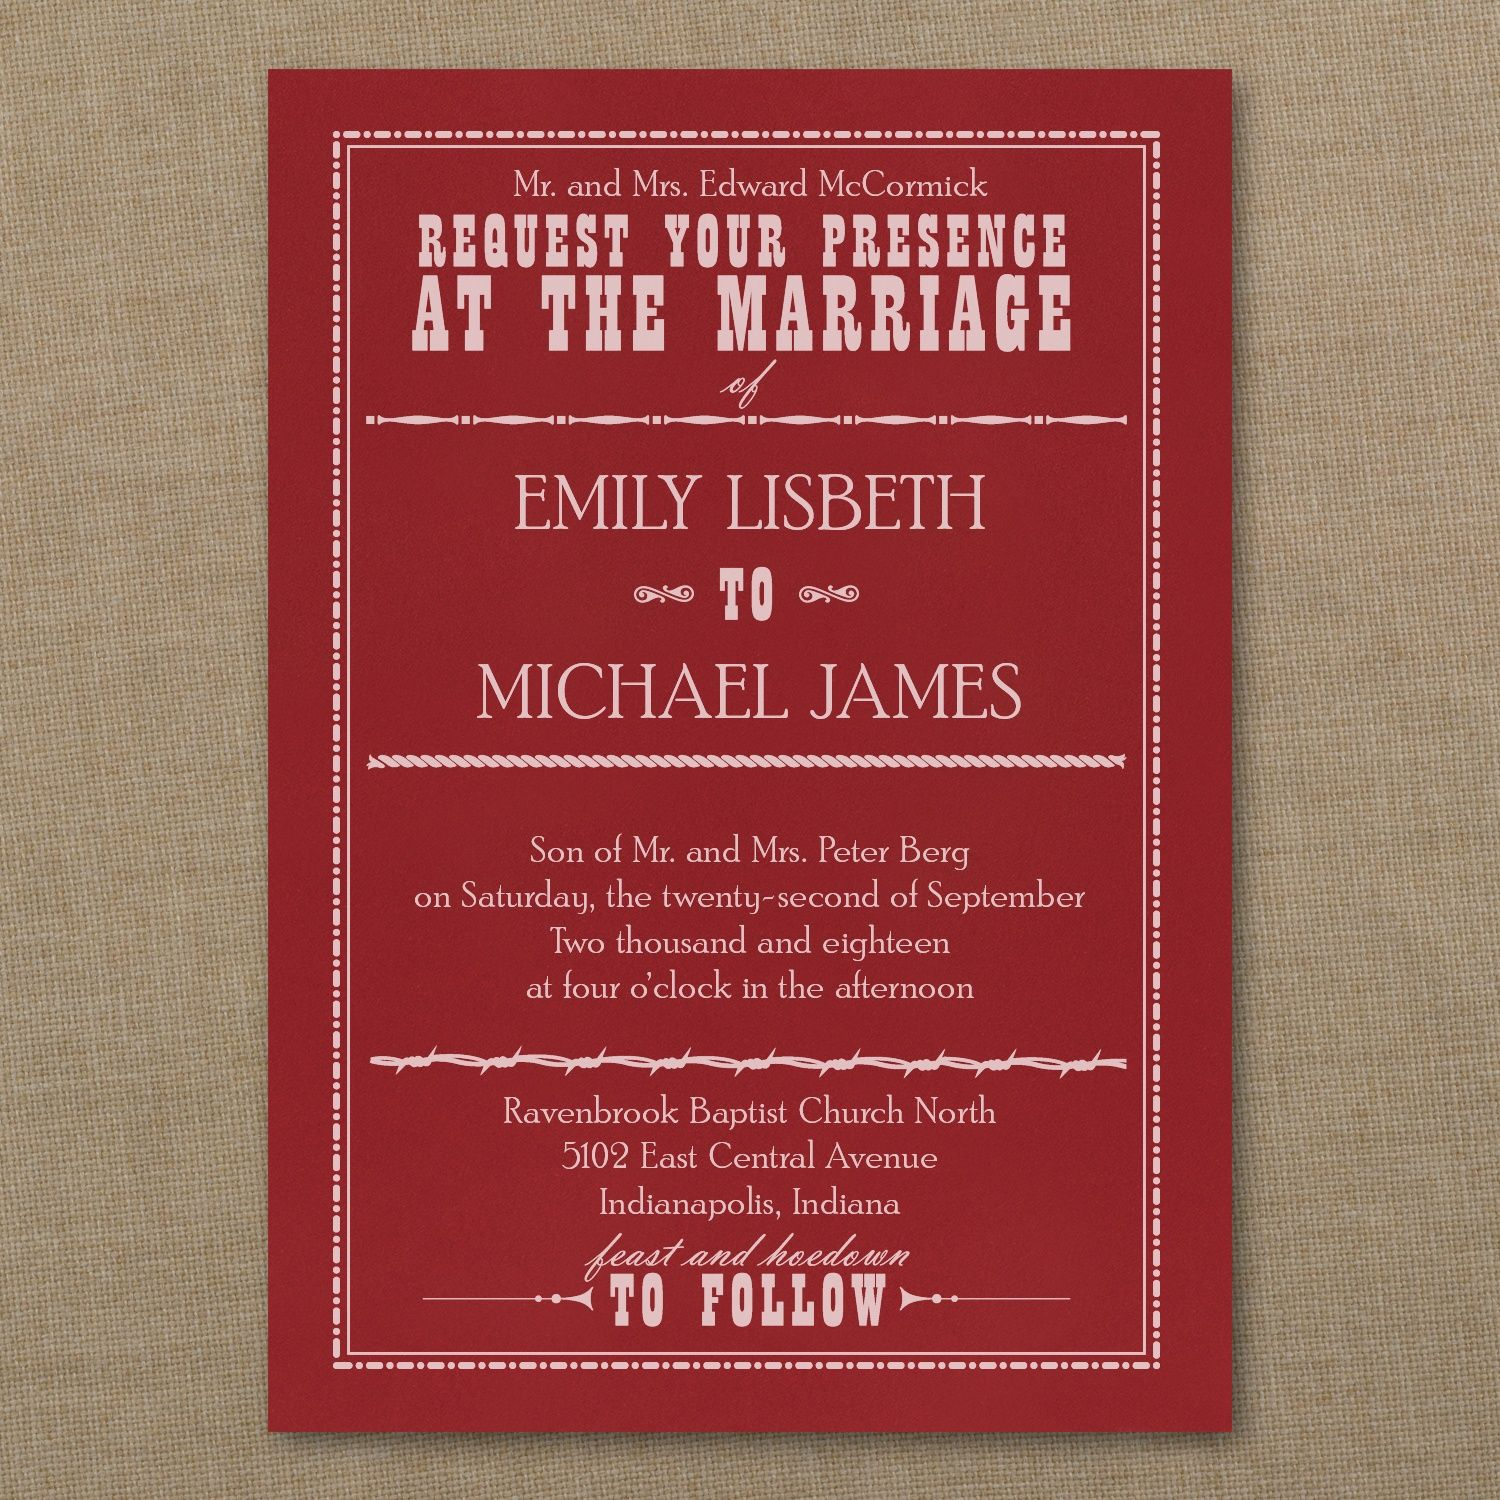 Red Wedding Ideas - Western Sensation - Classic Invitation - Claret ...